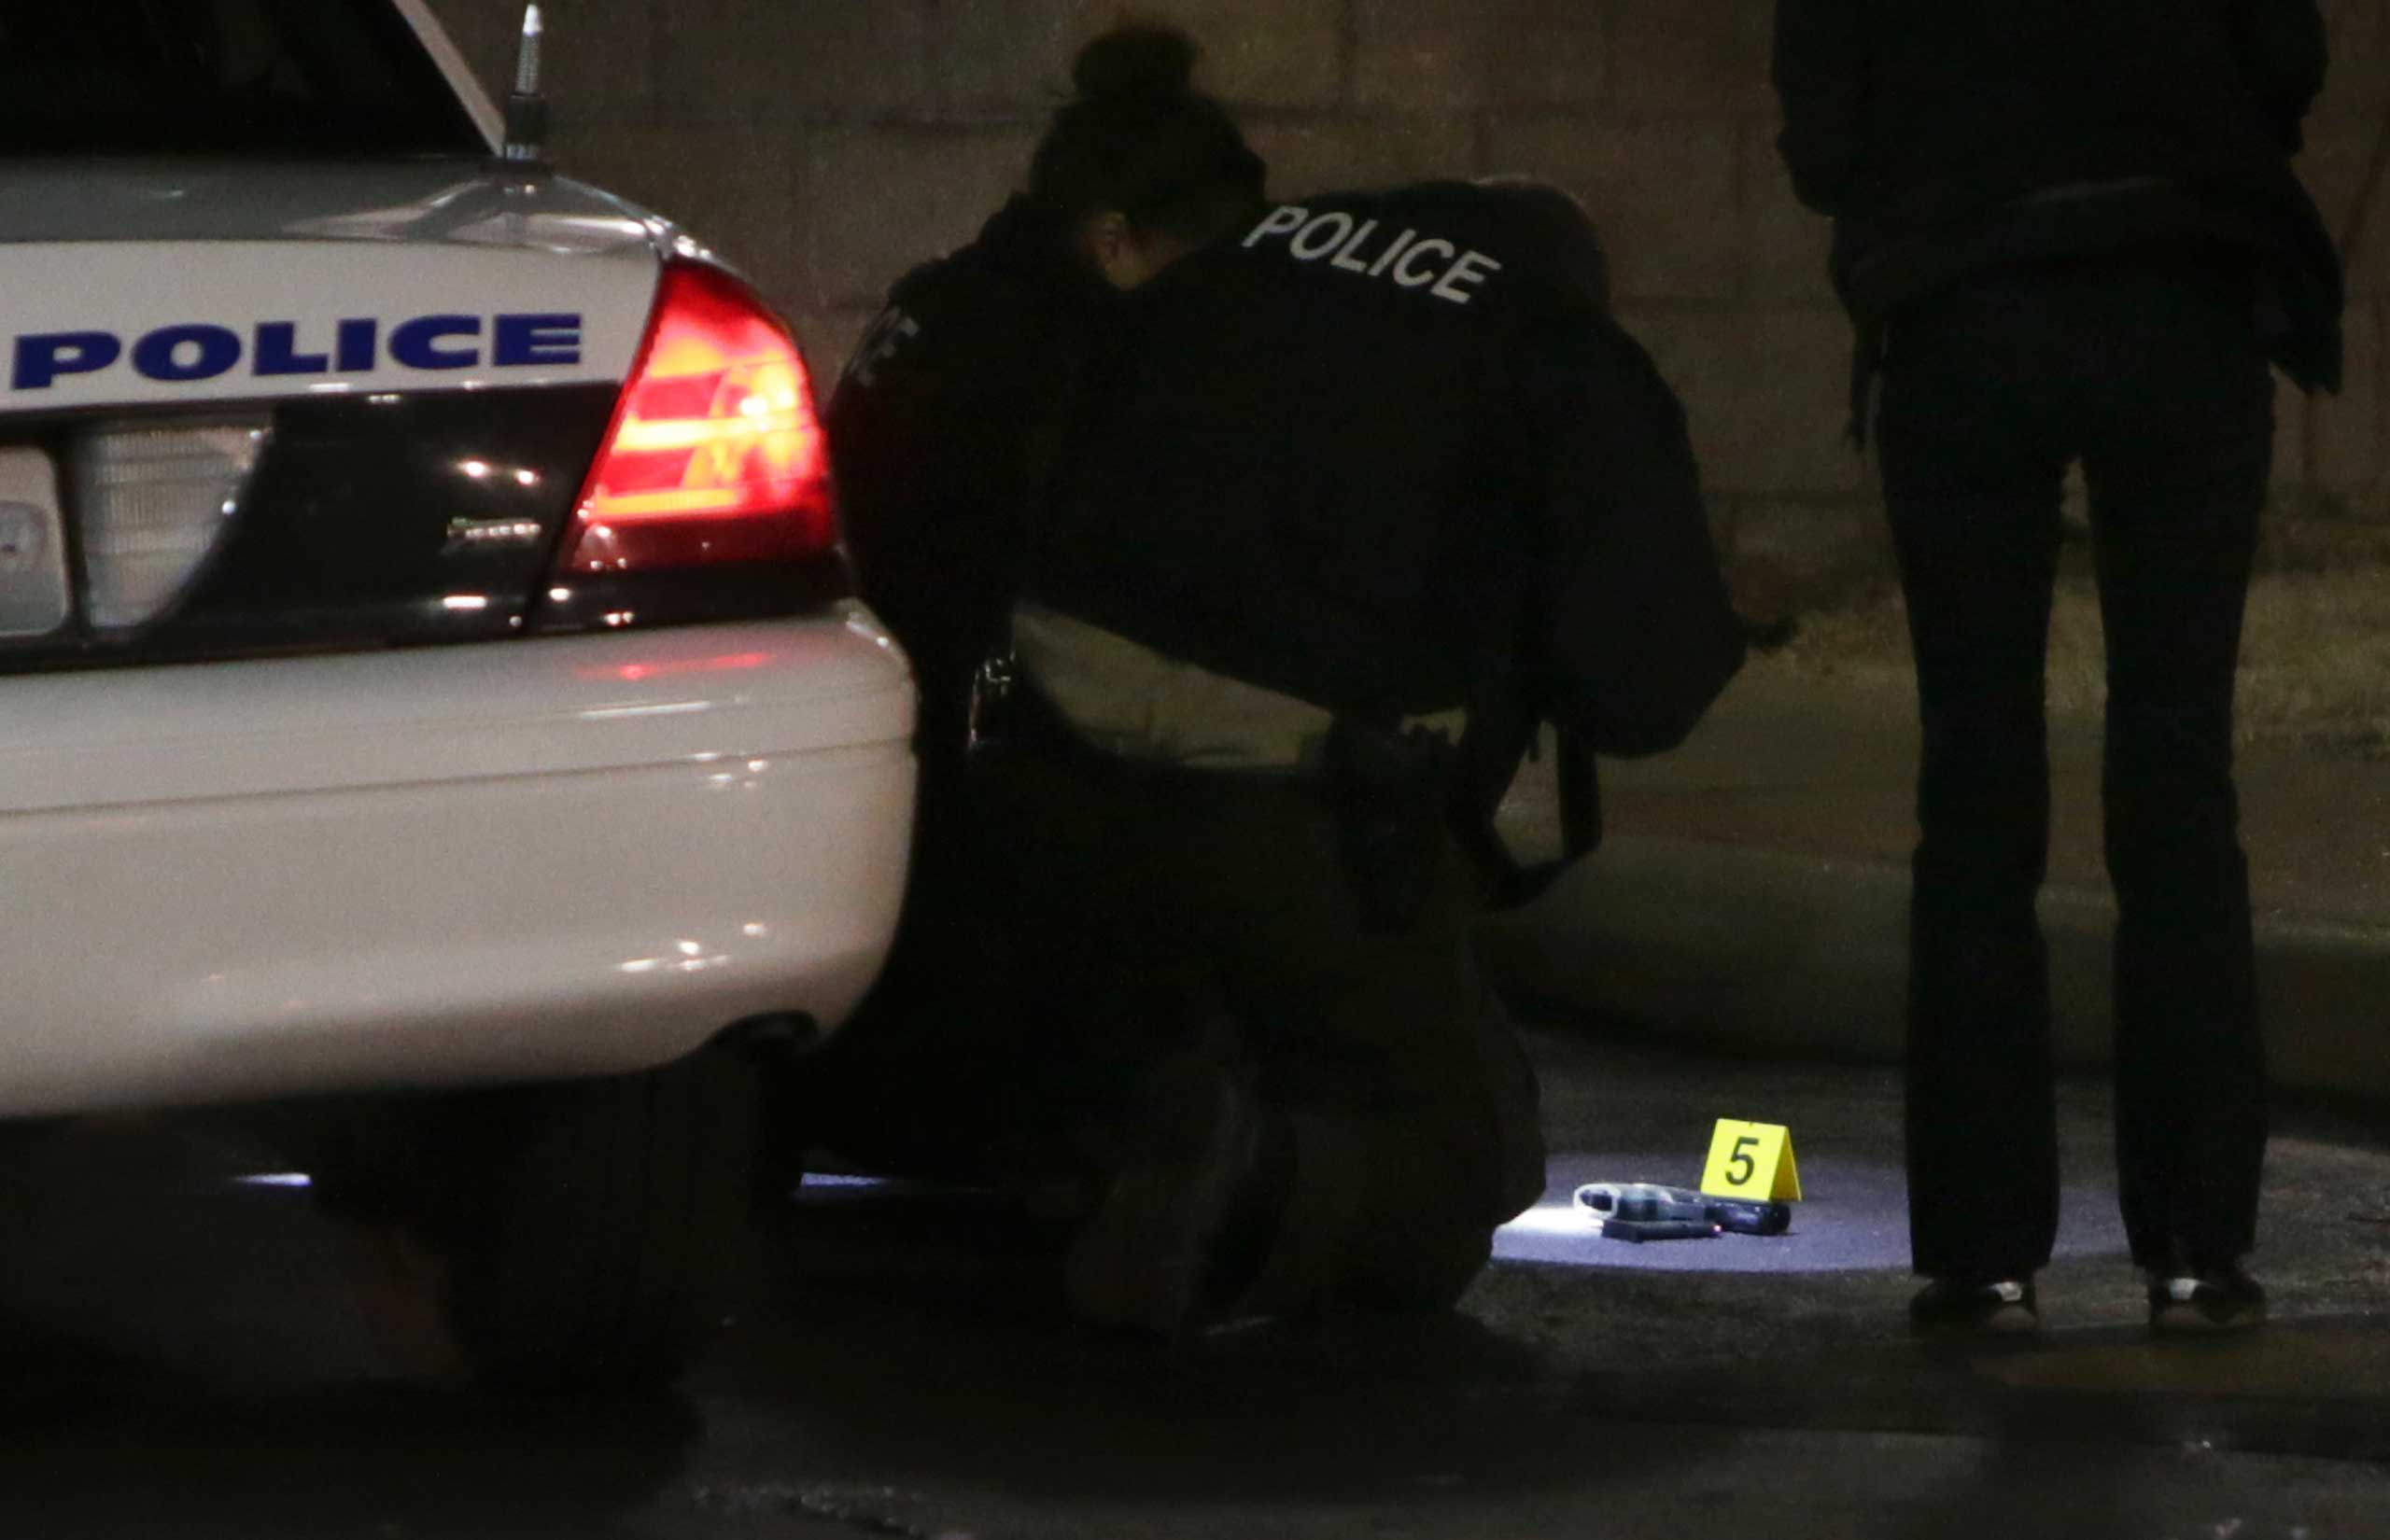 Police photograph a gun on the ground on Dec. 24, 2014 following a shooting at a gas station in Berkeley, Mo.